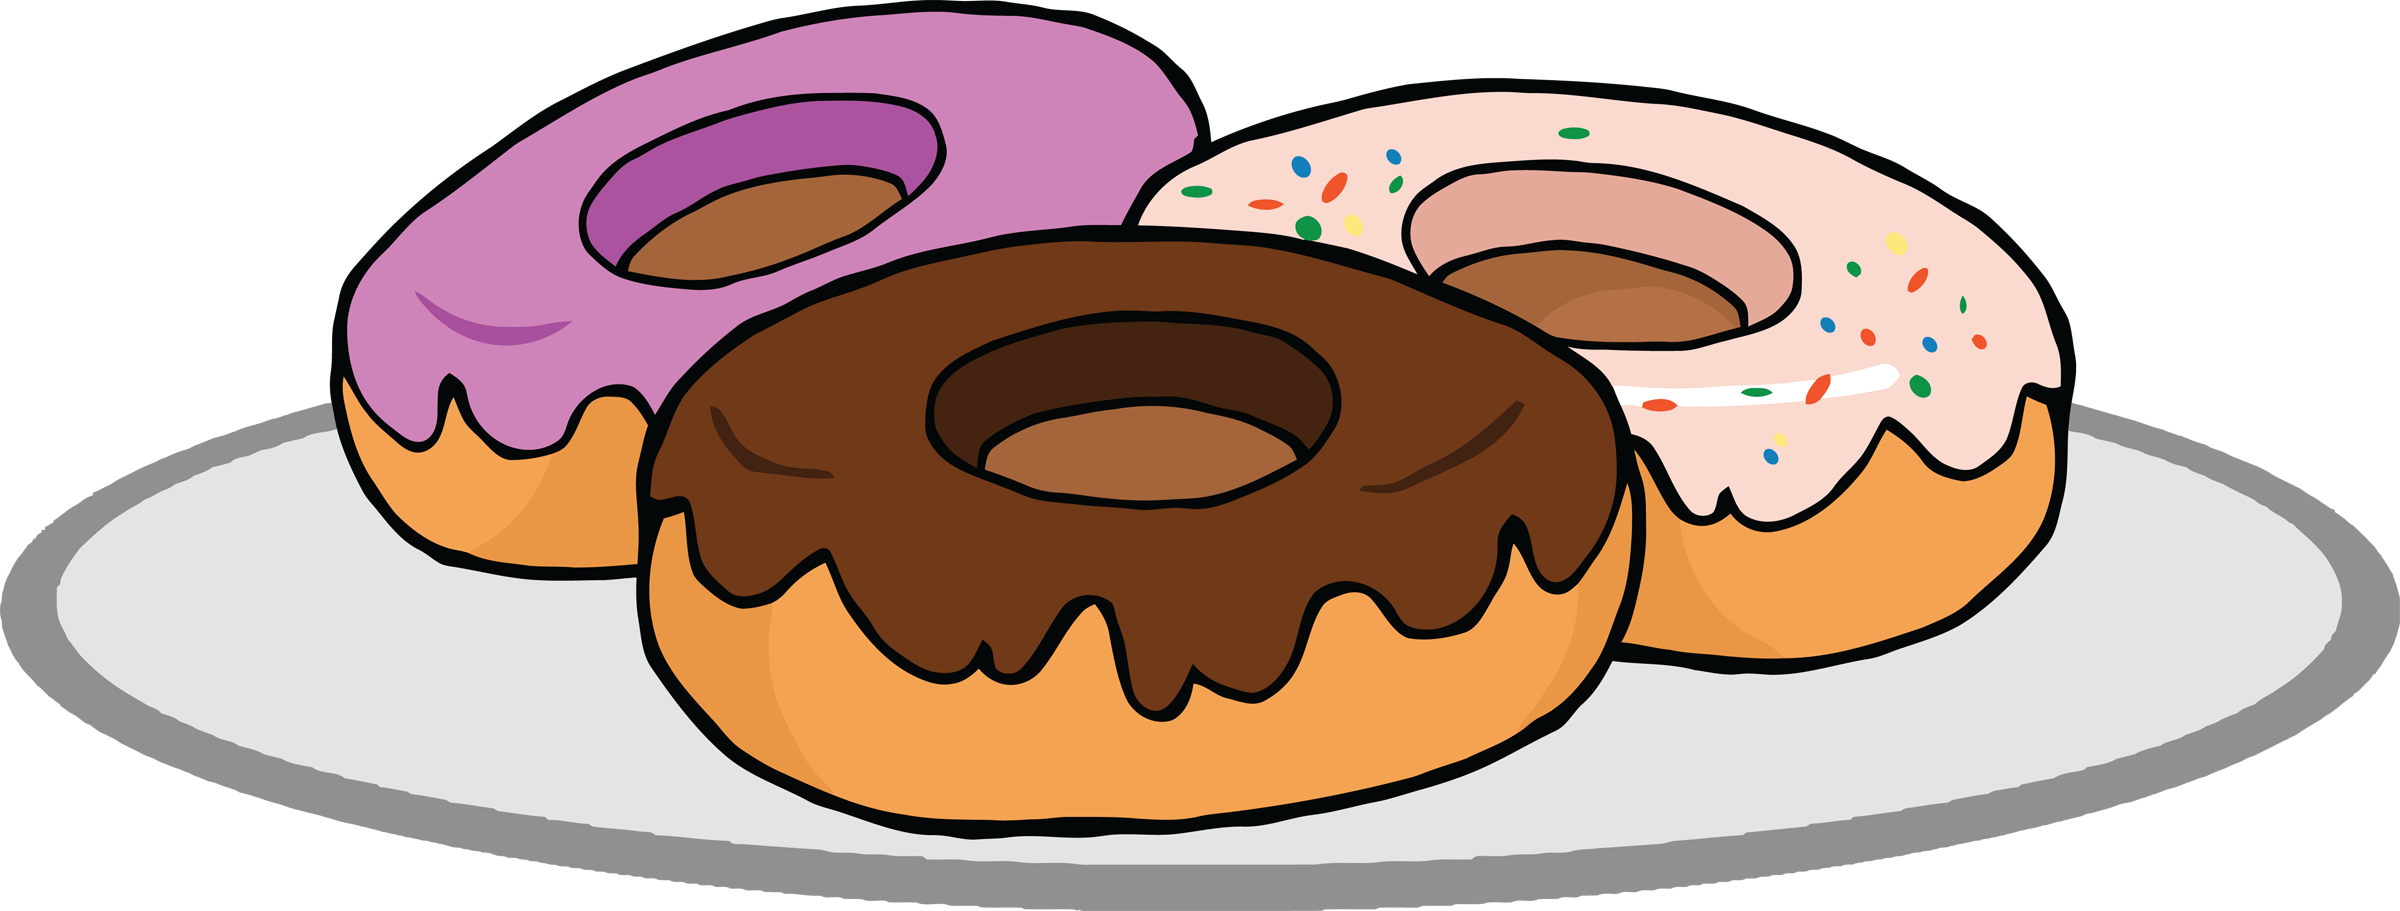 Doughnut clipart cinnamon donut.  collection of donuts